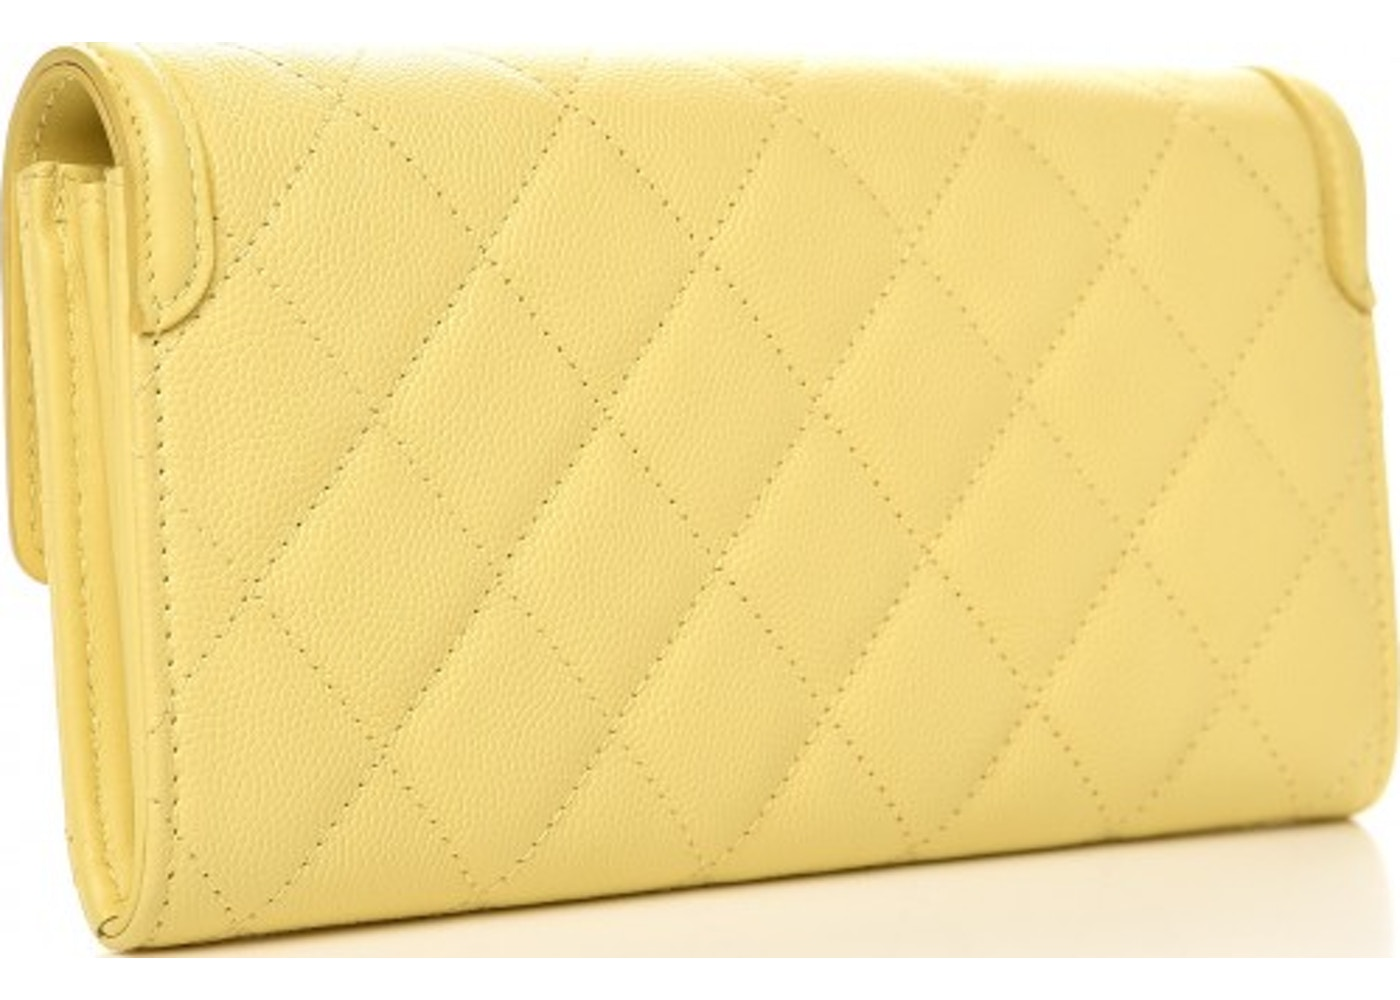 7c91458b1b1b Chanel Filigree Flap Wallet Quilted Diamond Small Yellow